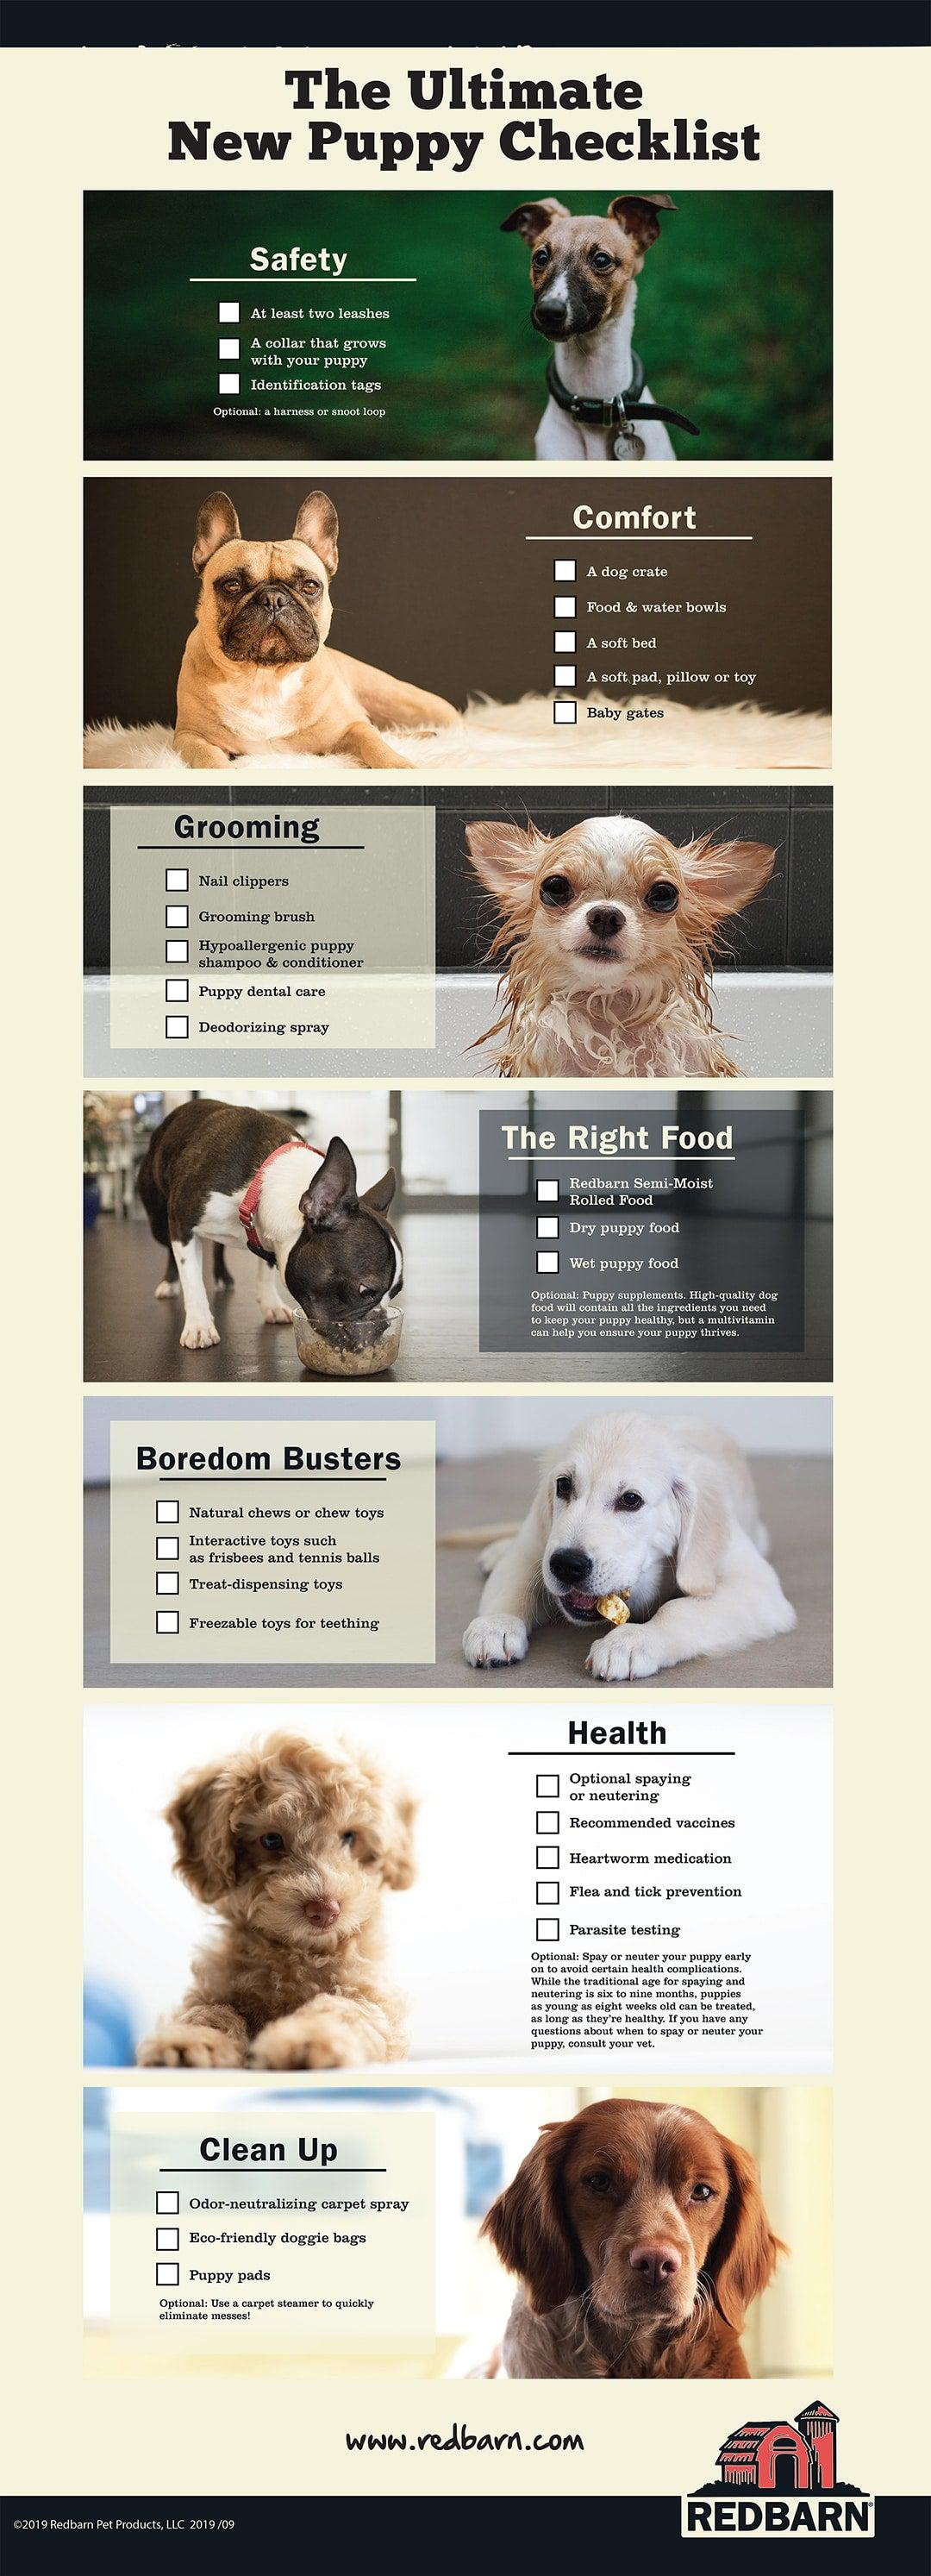 Puppy Proofing 101 The Ultimate New Puppy Checklist for New Dog Owners by Redbarn